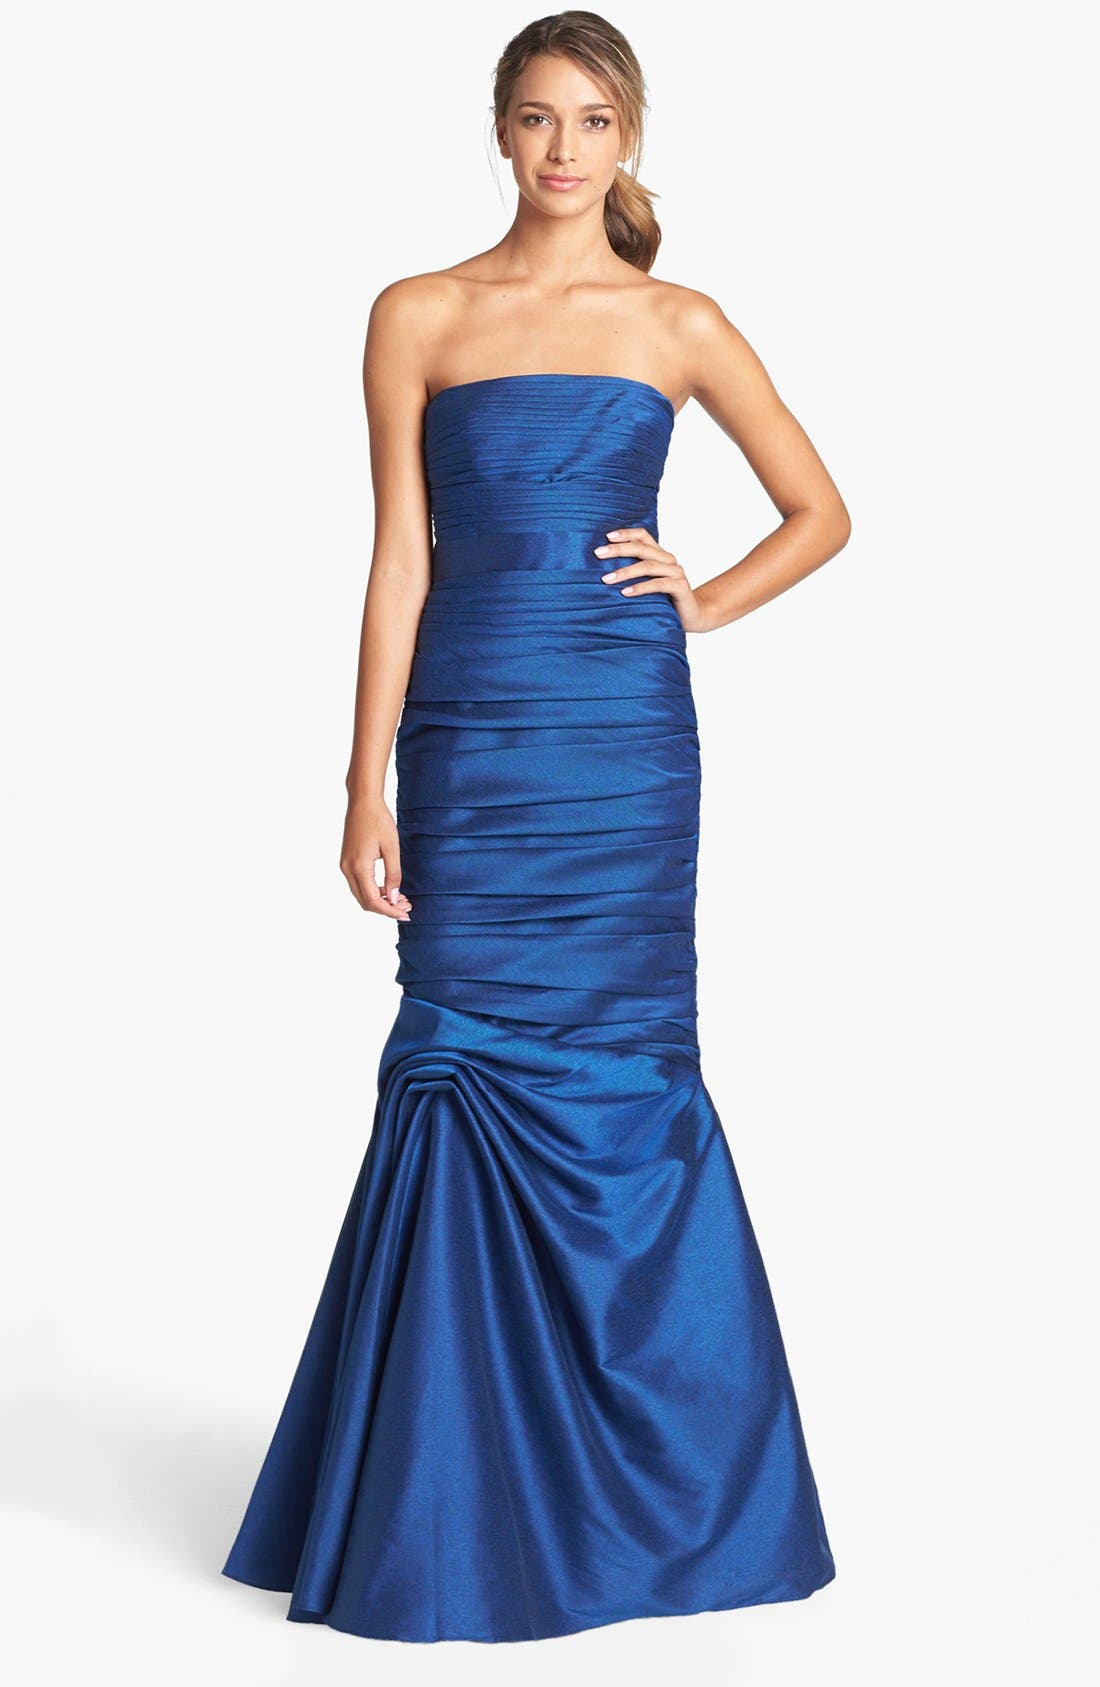 Main Image - ML Monique Lhuillier Strapless Ruched Faille Mermaid Gown (Nordstrom Exclusive)